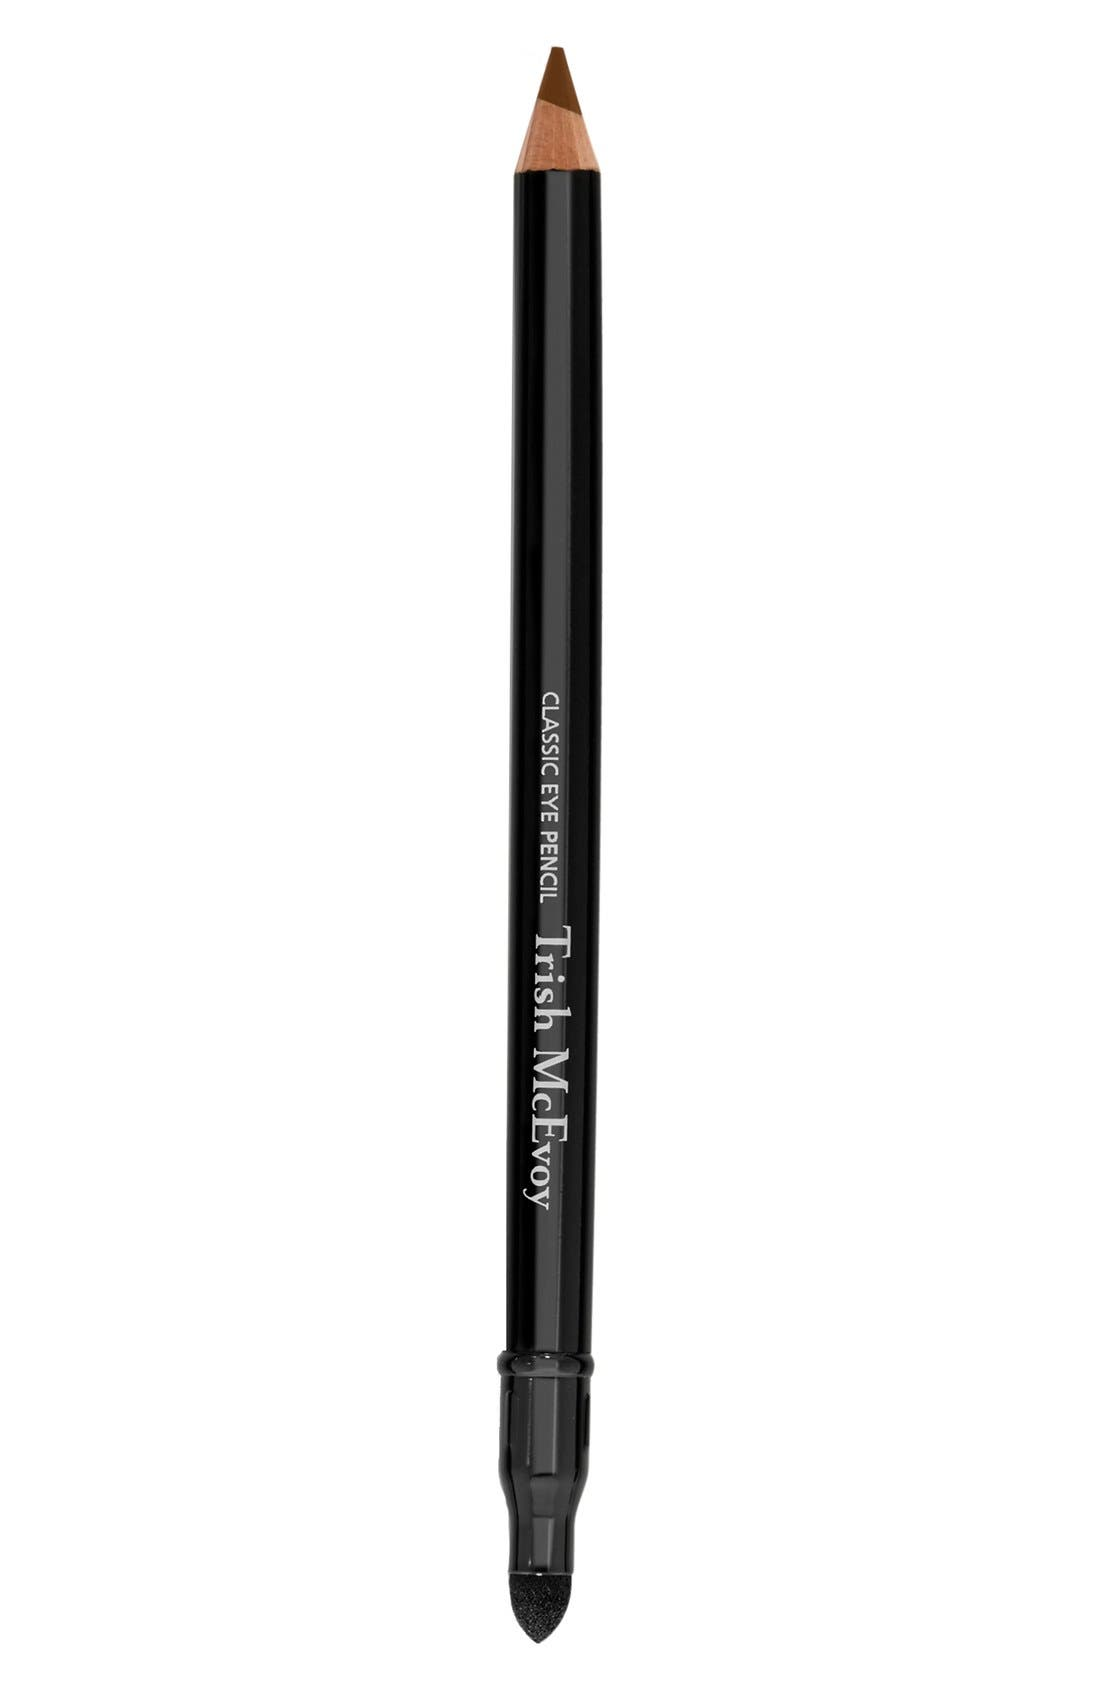 Trish McEvoy Classic Eye Pencil